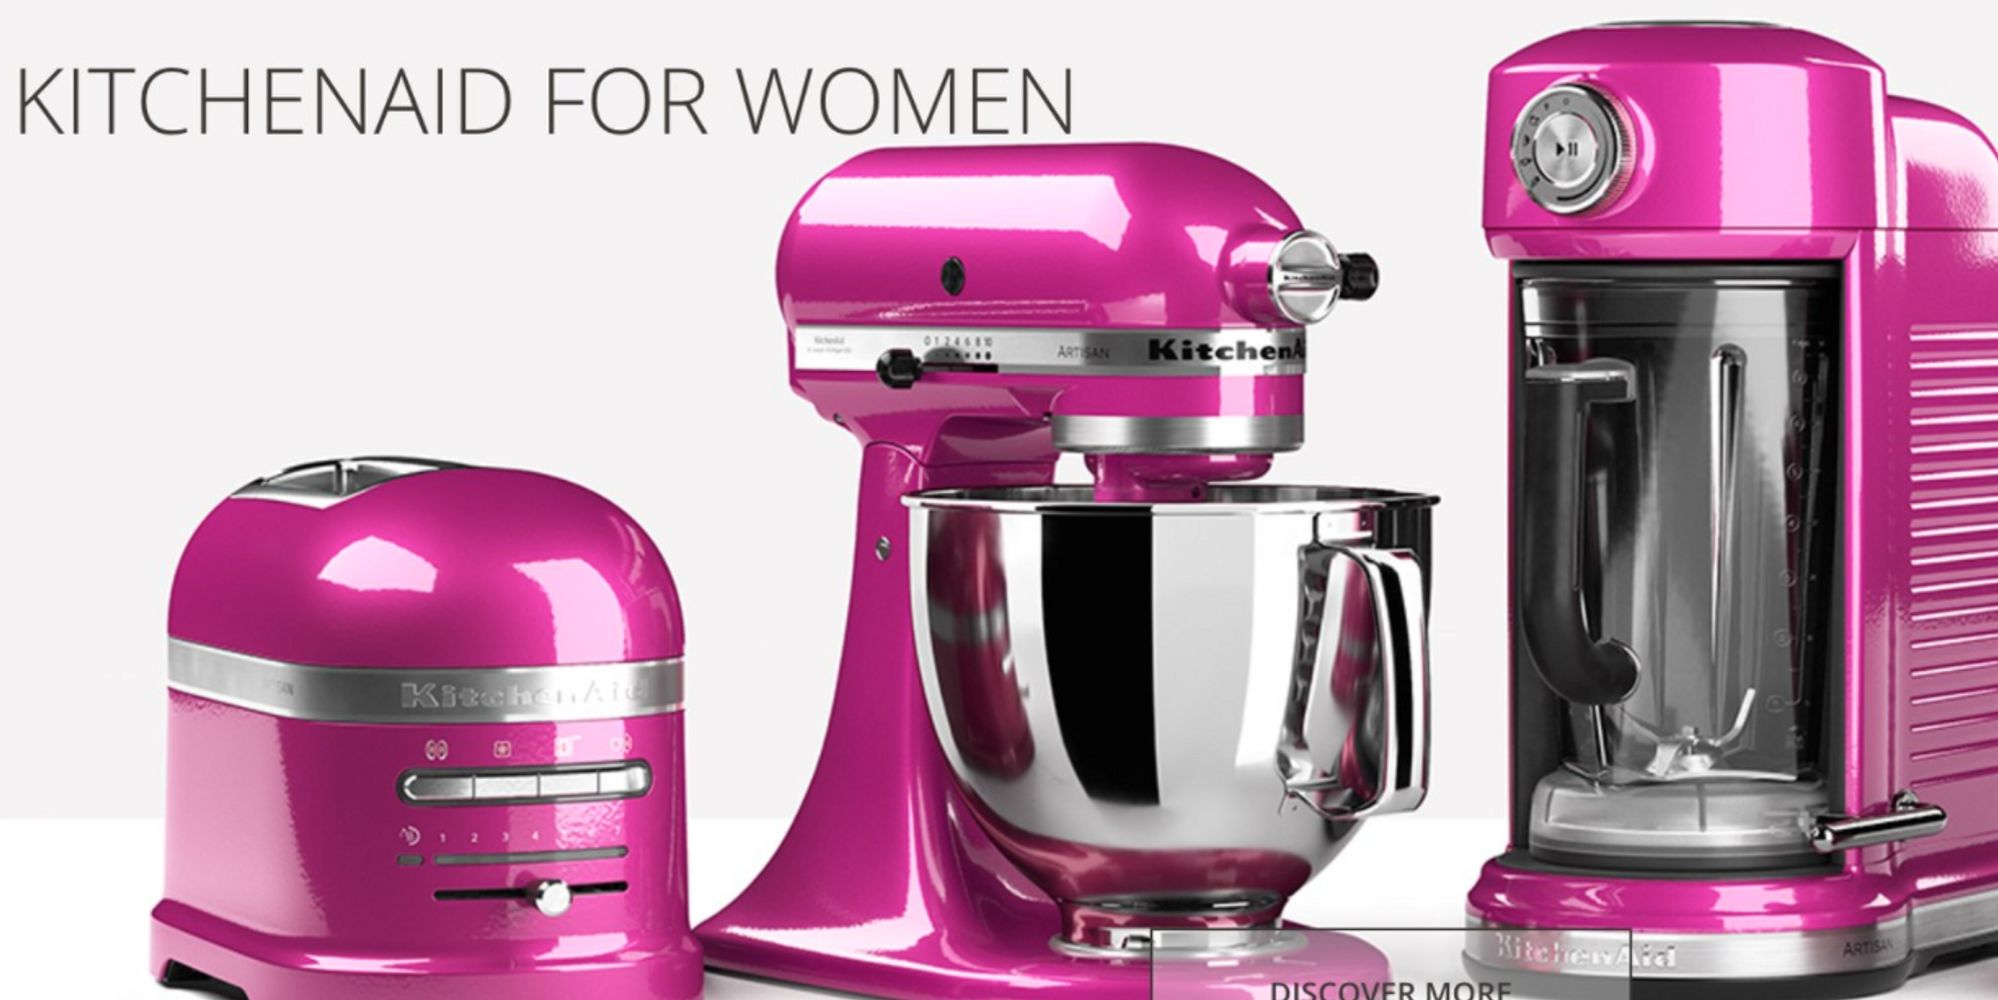 Kitchenaid Called 39 Sexist 39 For Advertising Pink Cooking